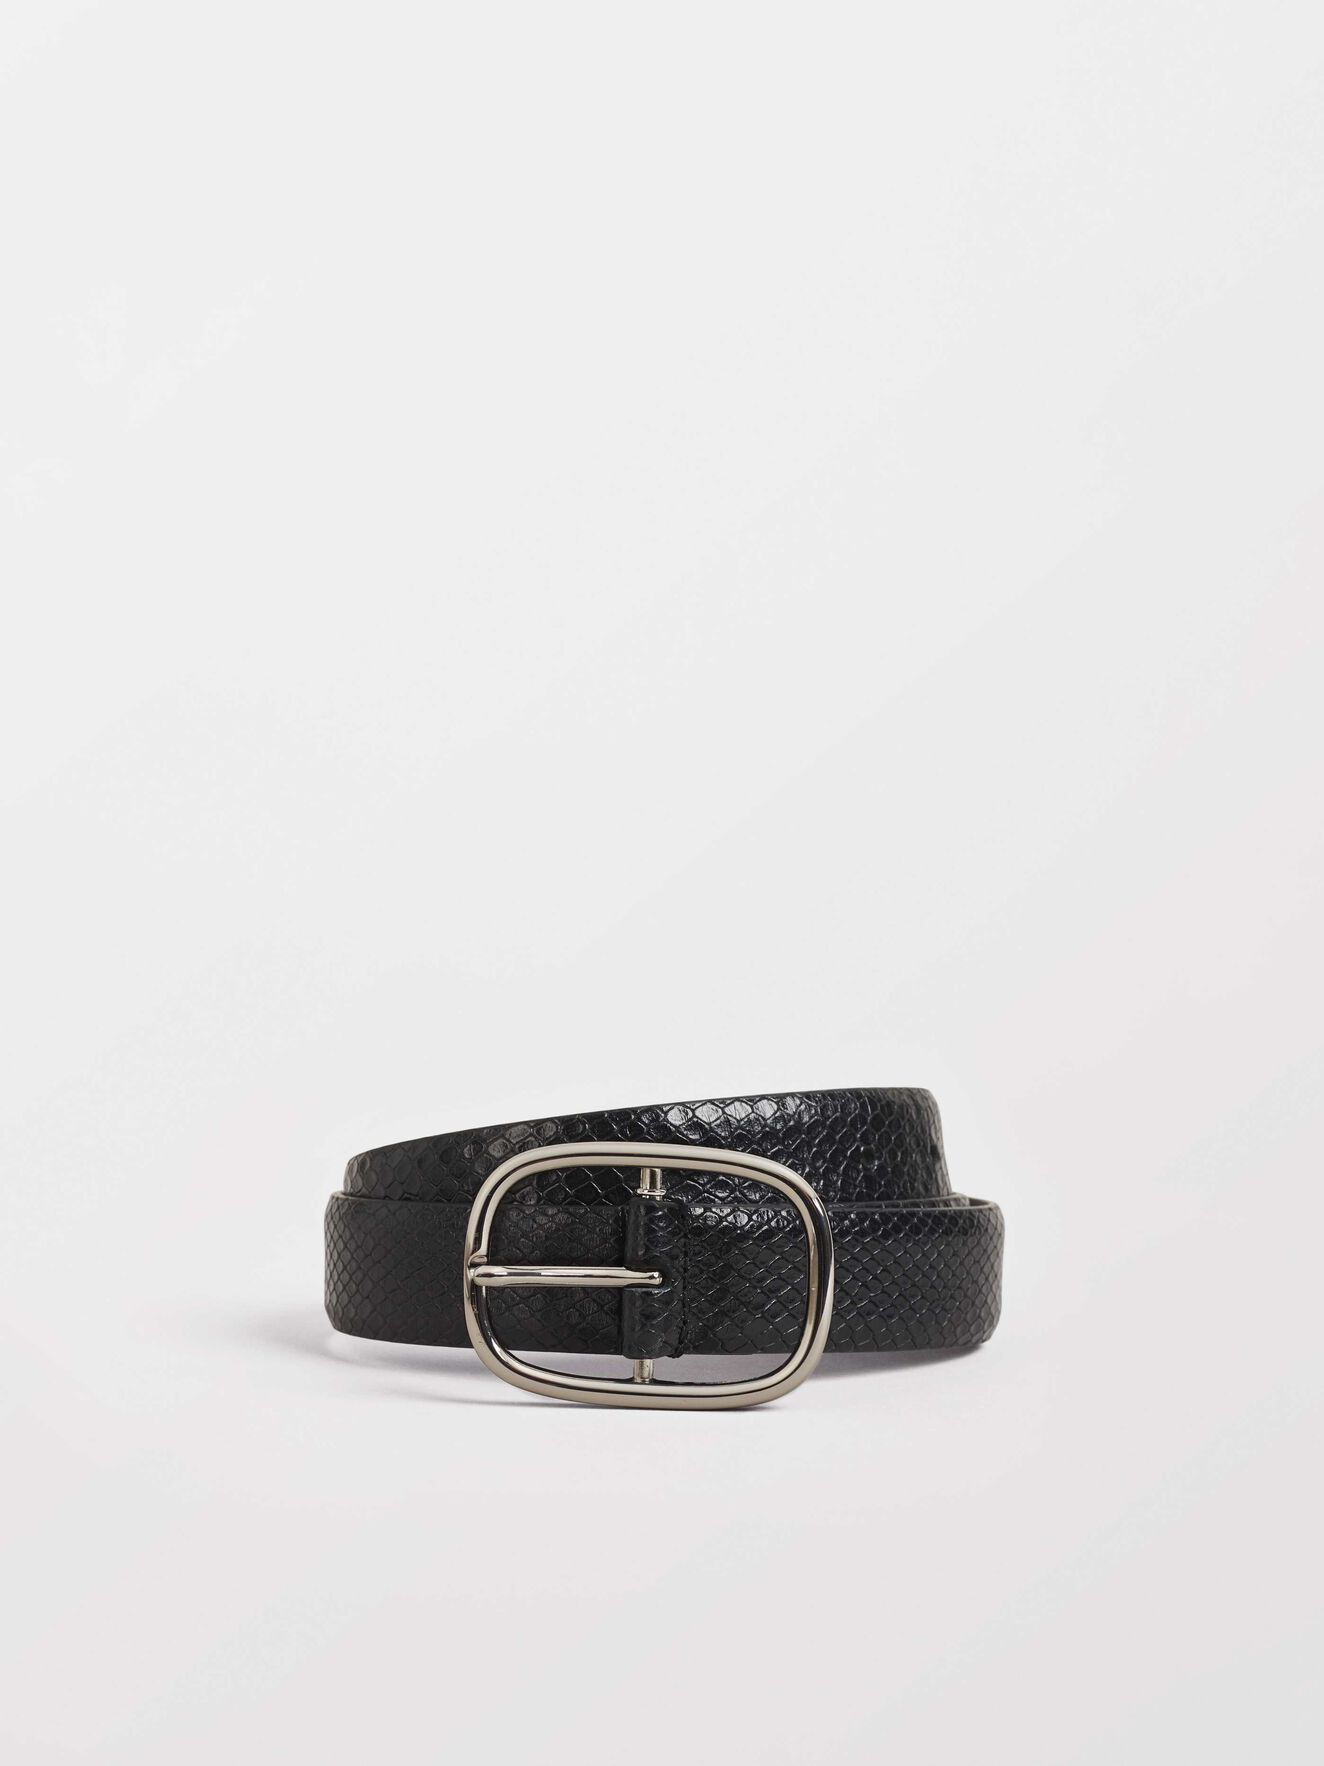 Balatin Belt in Black from Tiger of Sweden